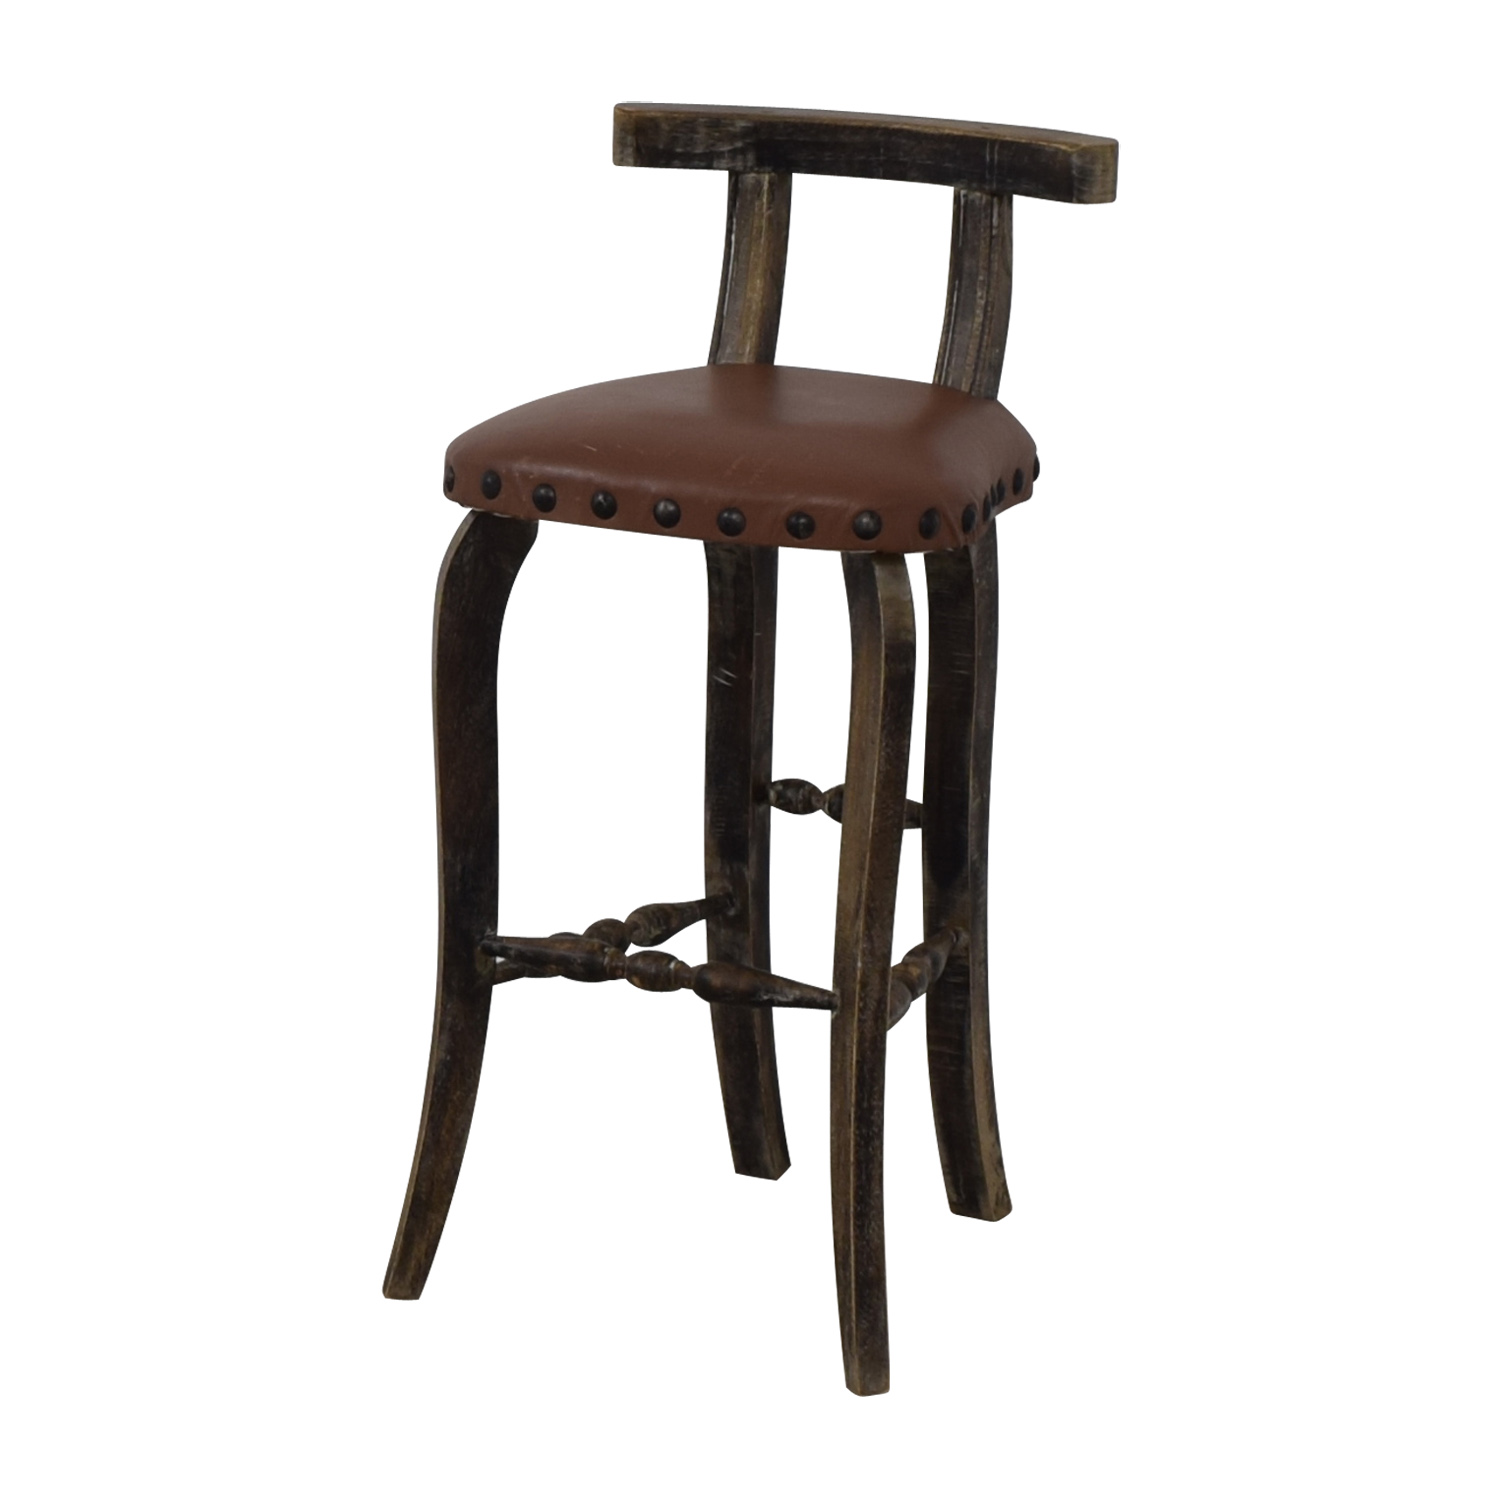 Nadeau Nadeau Antique Brown Nailhead Asian Stool Stools